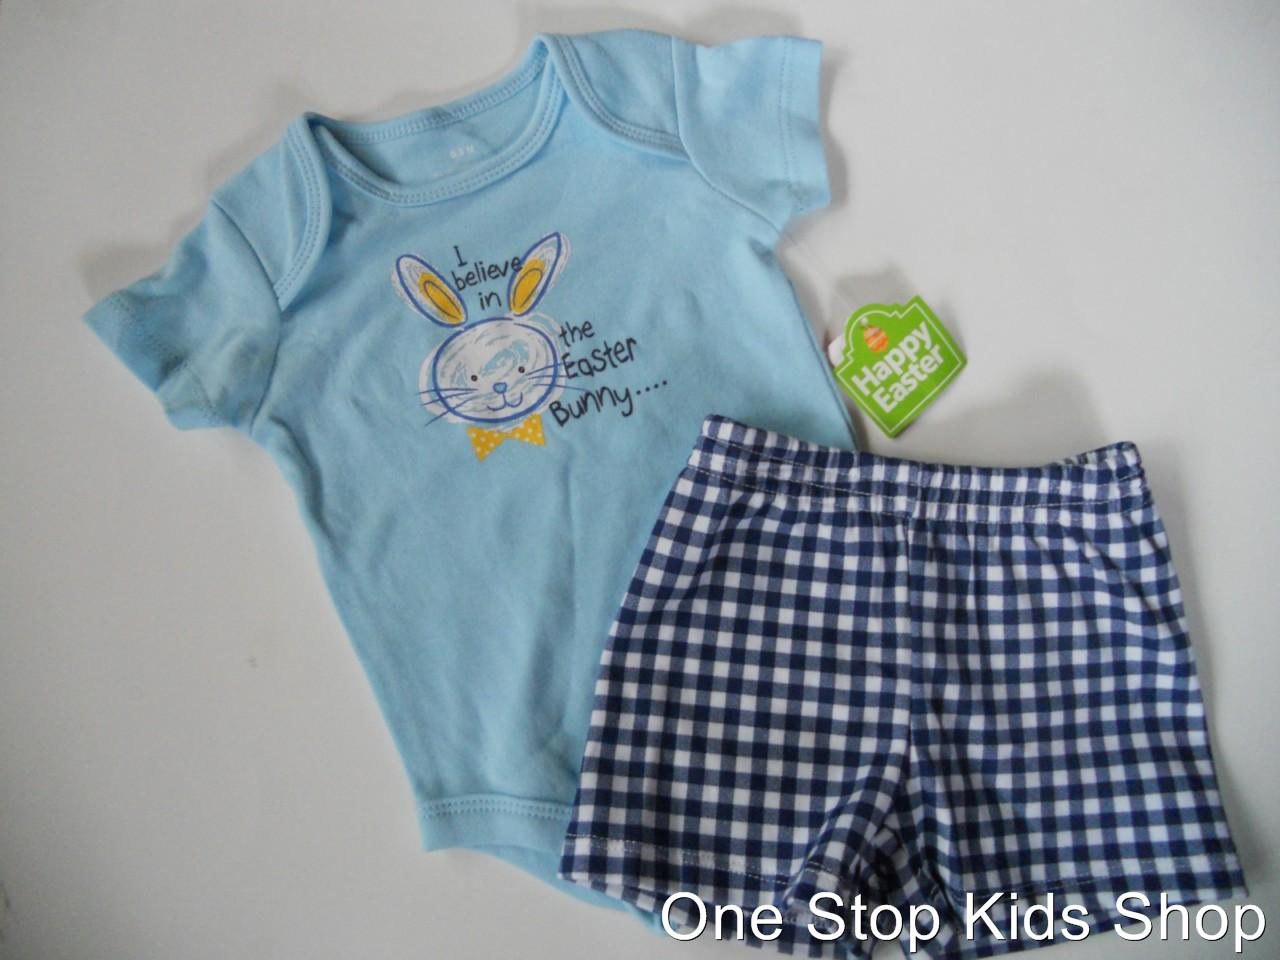 Boys' & Girls' Spring Clothing When spring makes its sunny appearance, stock your sweetie's closet with cute apparel and accessories to get them through the season. Build your baby girl or baby boy's outfits for Easter, rainy days and playground fun with our darling finds.